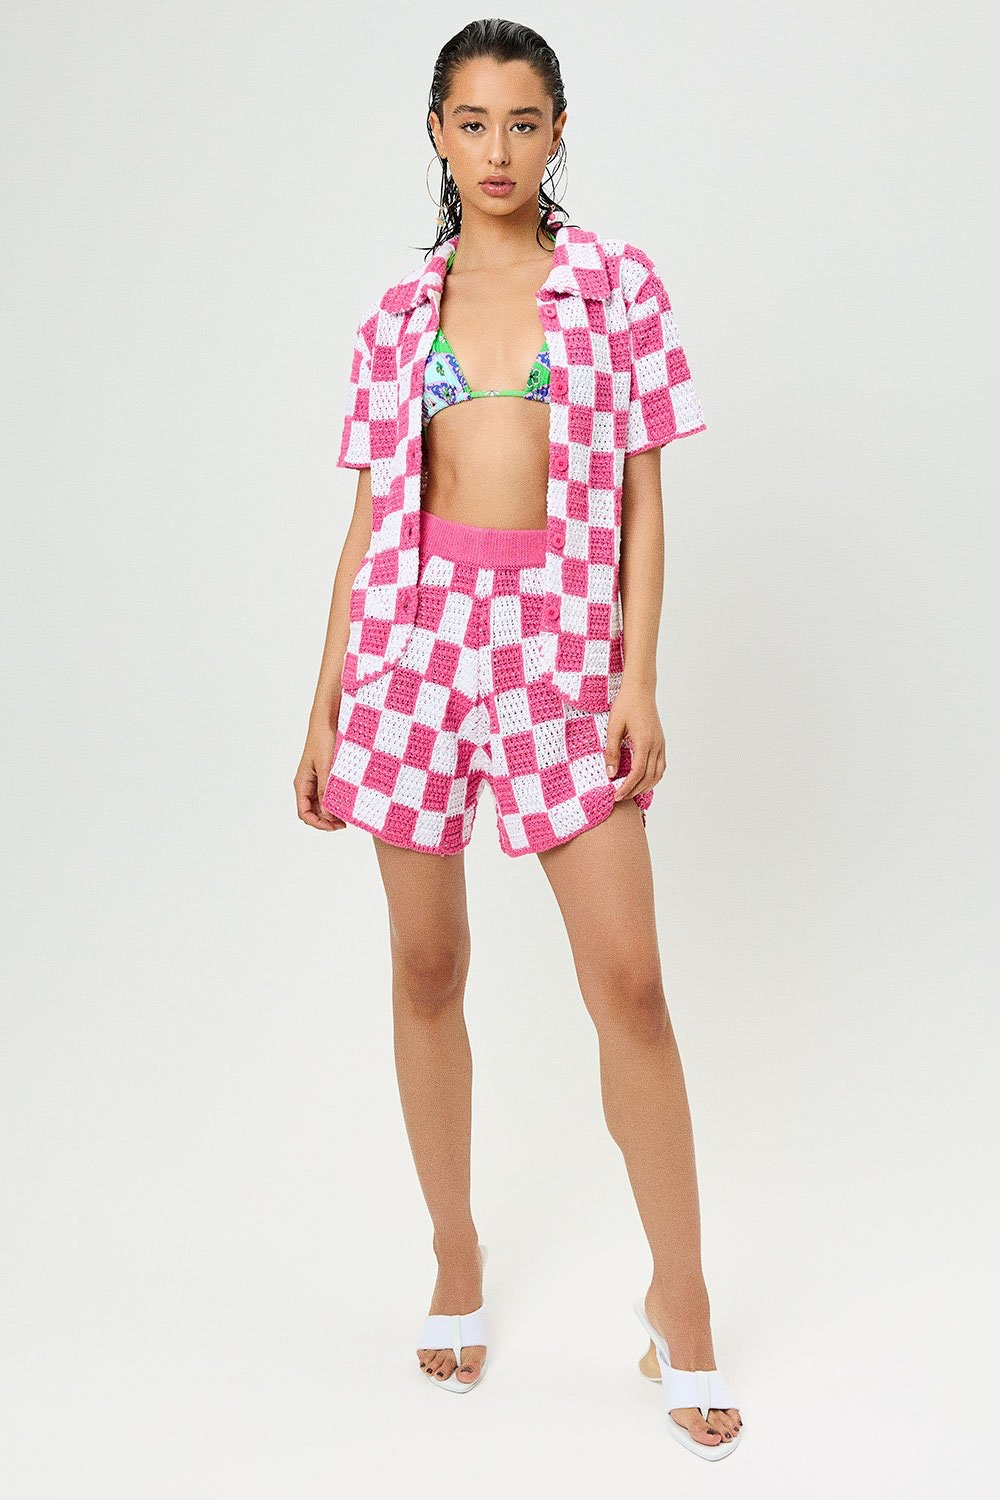 Coco Crochet Button Up Shirt in Pink Checker